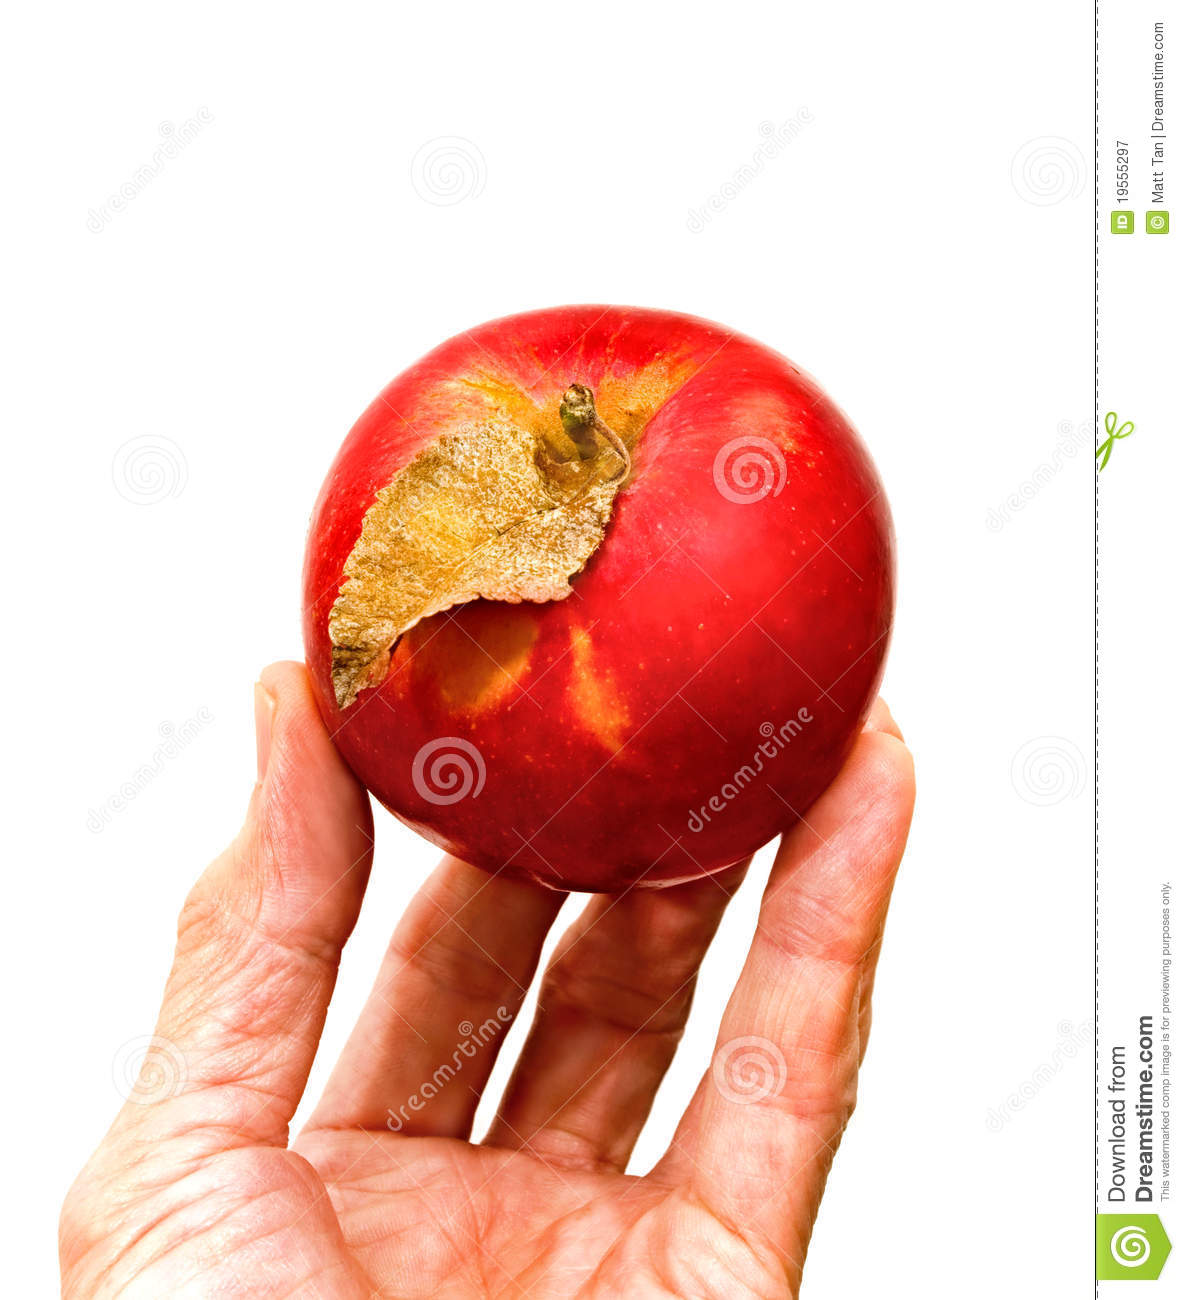 Apple Picking Season Is Here  Summer Warm Weather Outdoors Work And